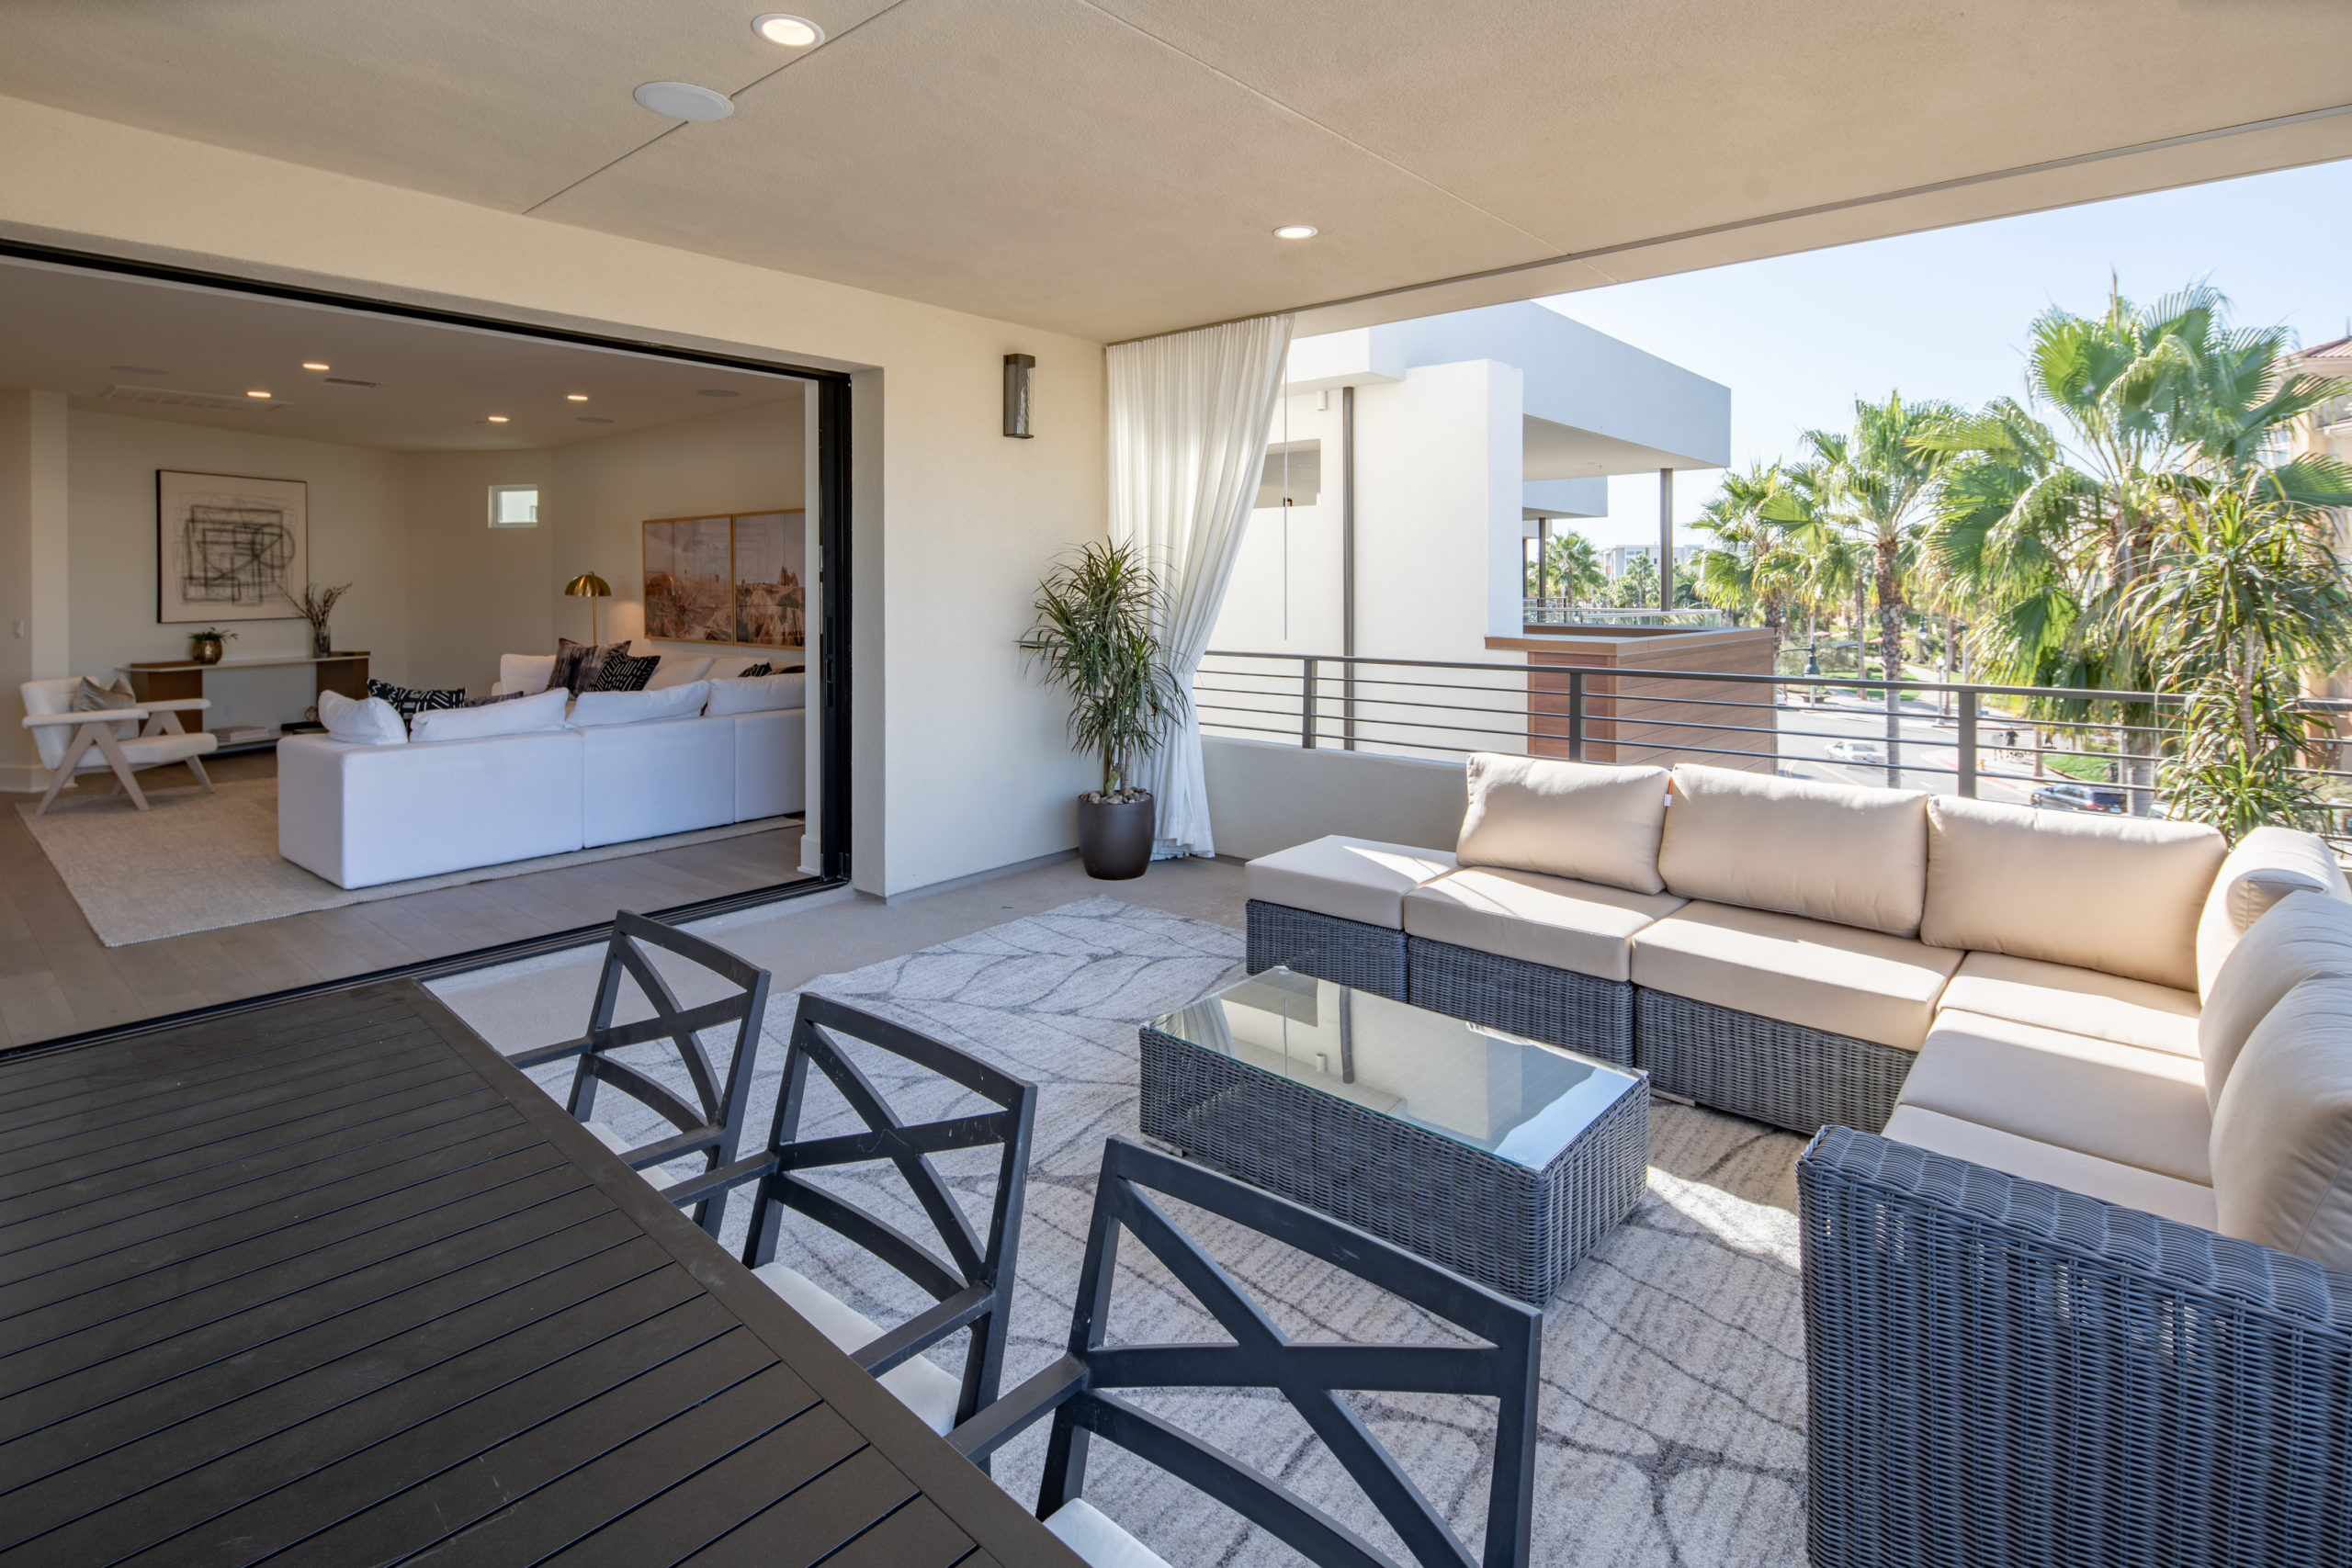 The collection covered deck in playa vista